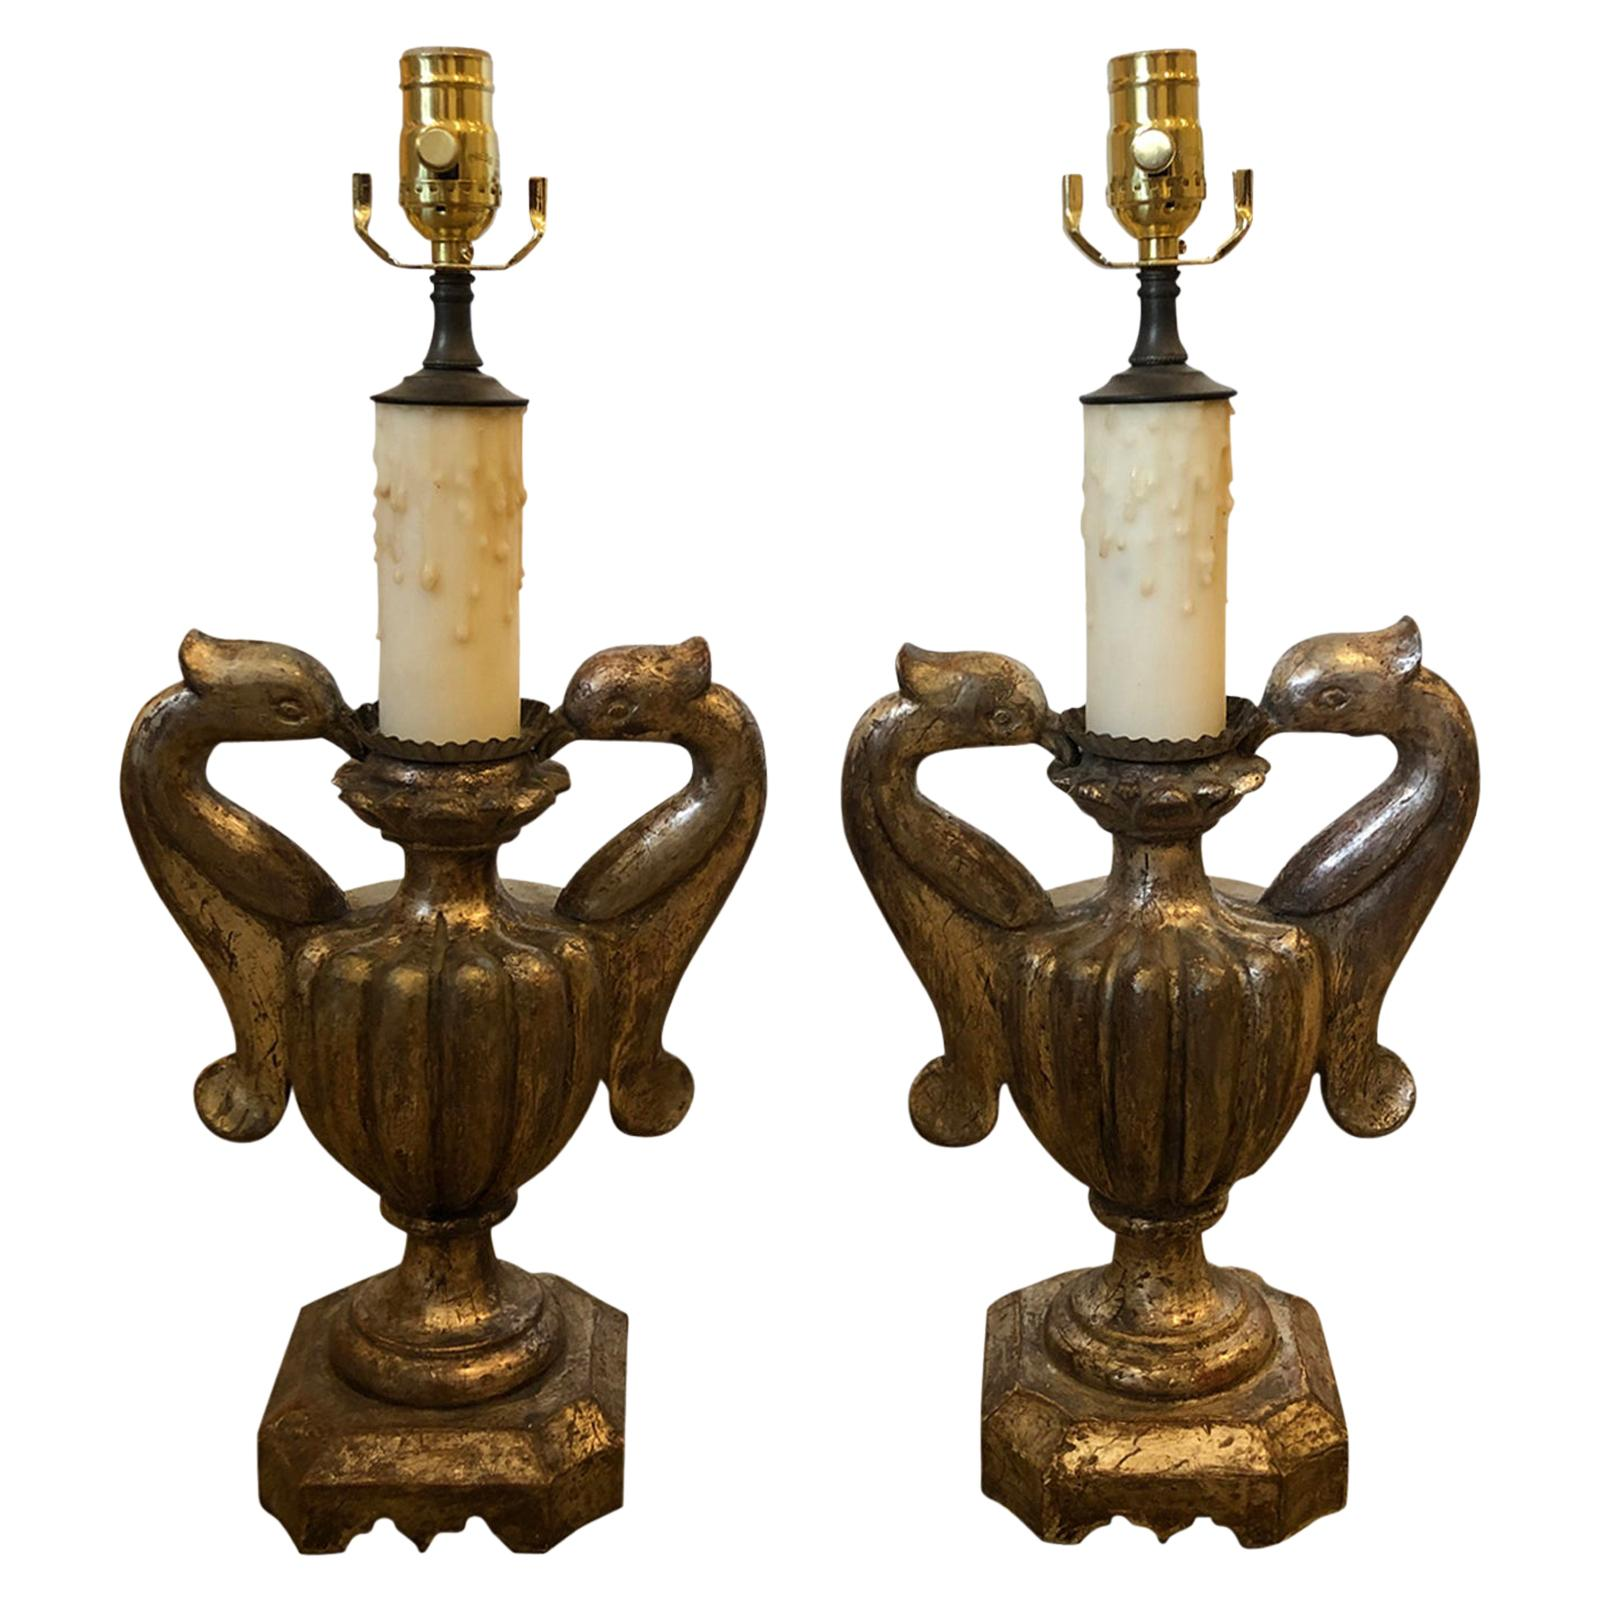 Pair of 18th-19th Century Italian Silver Gilt Urns as Lamps